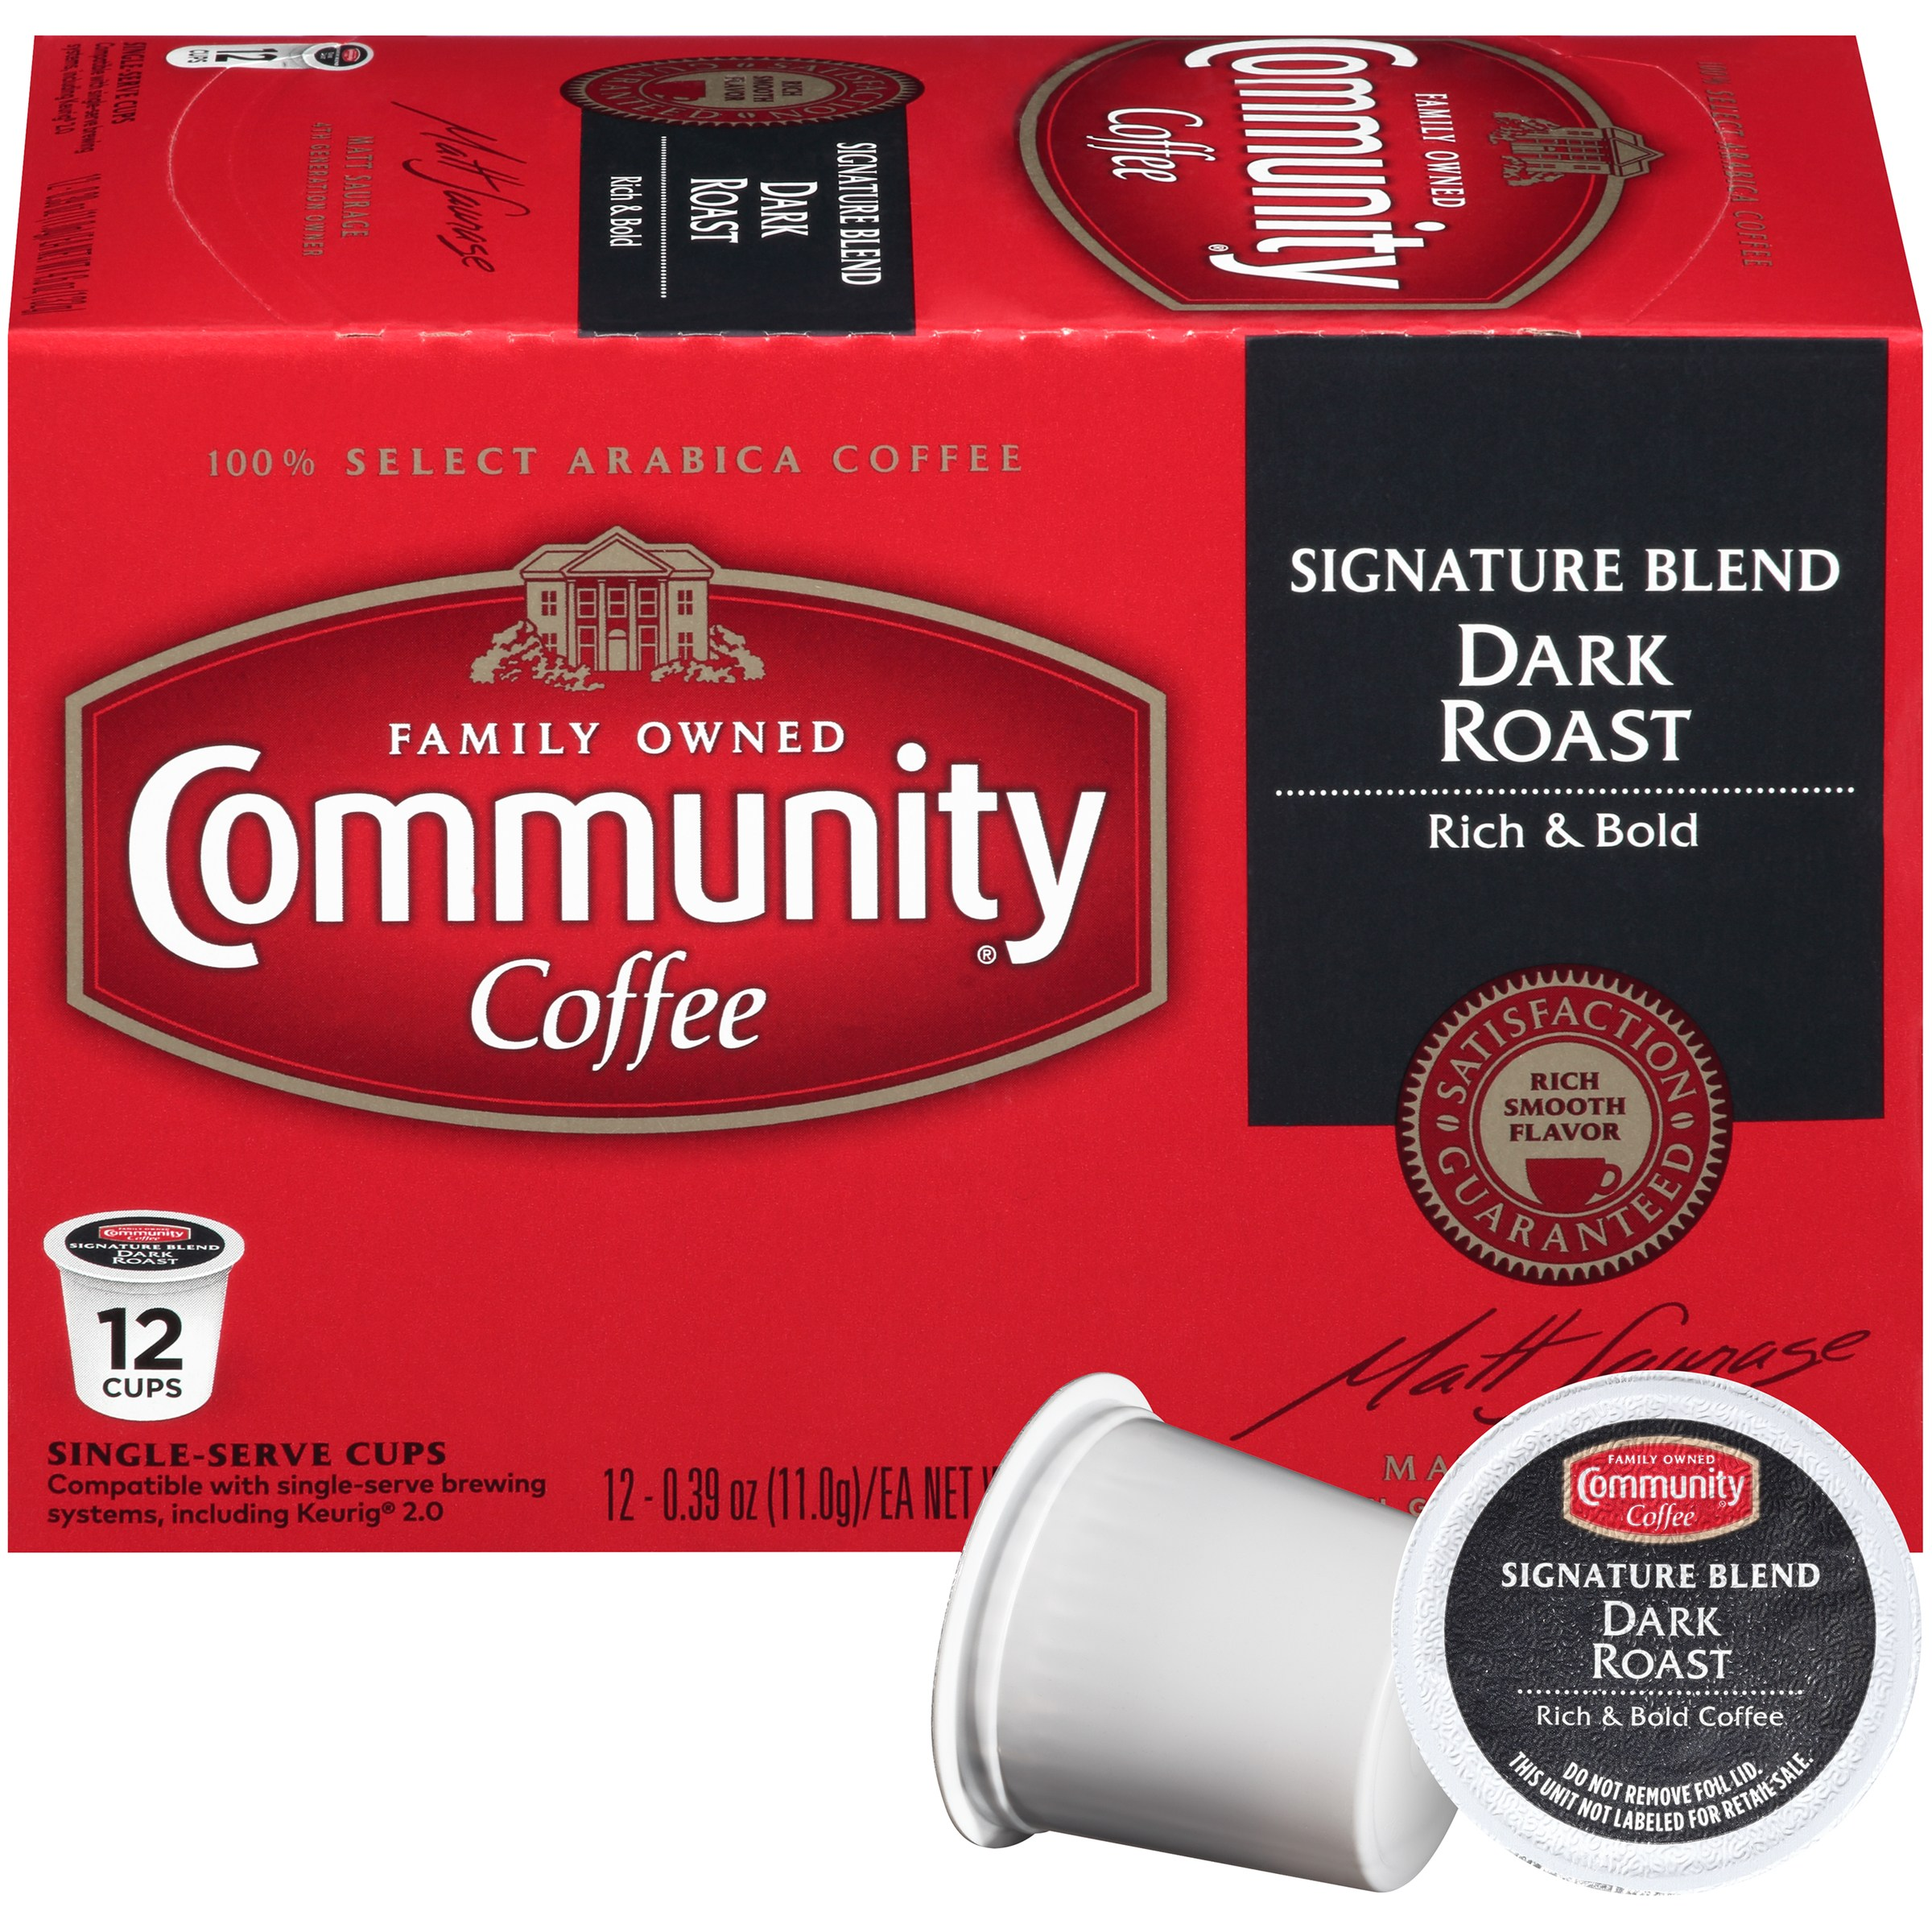 Community Coffee Single-Serve Cups Signature Blend Dark Roast Coffee, 12 Count, Compatible with Keurig K-Cup Brewers